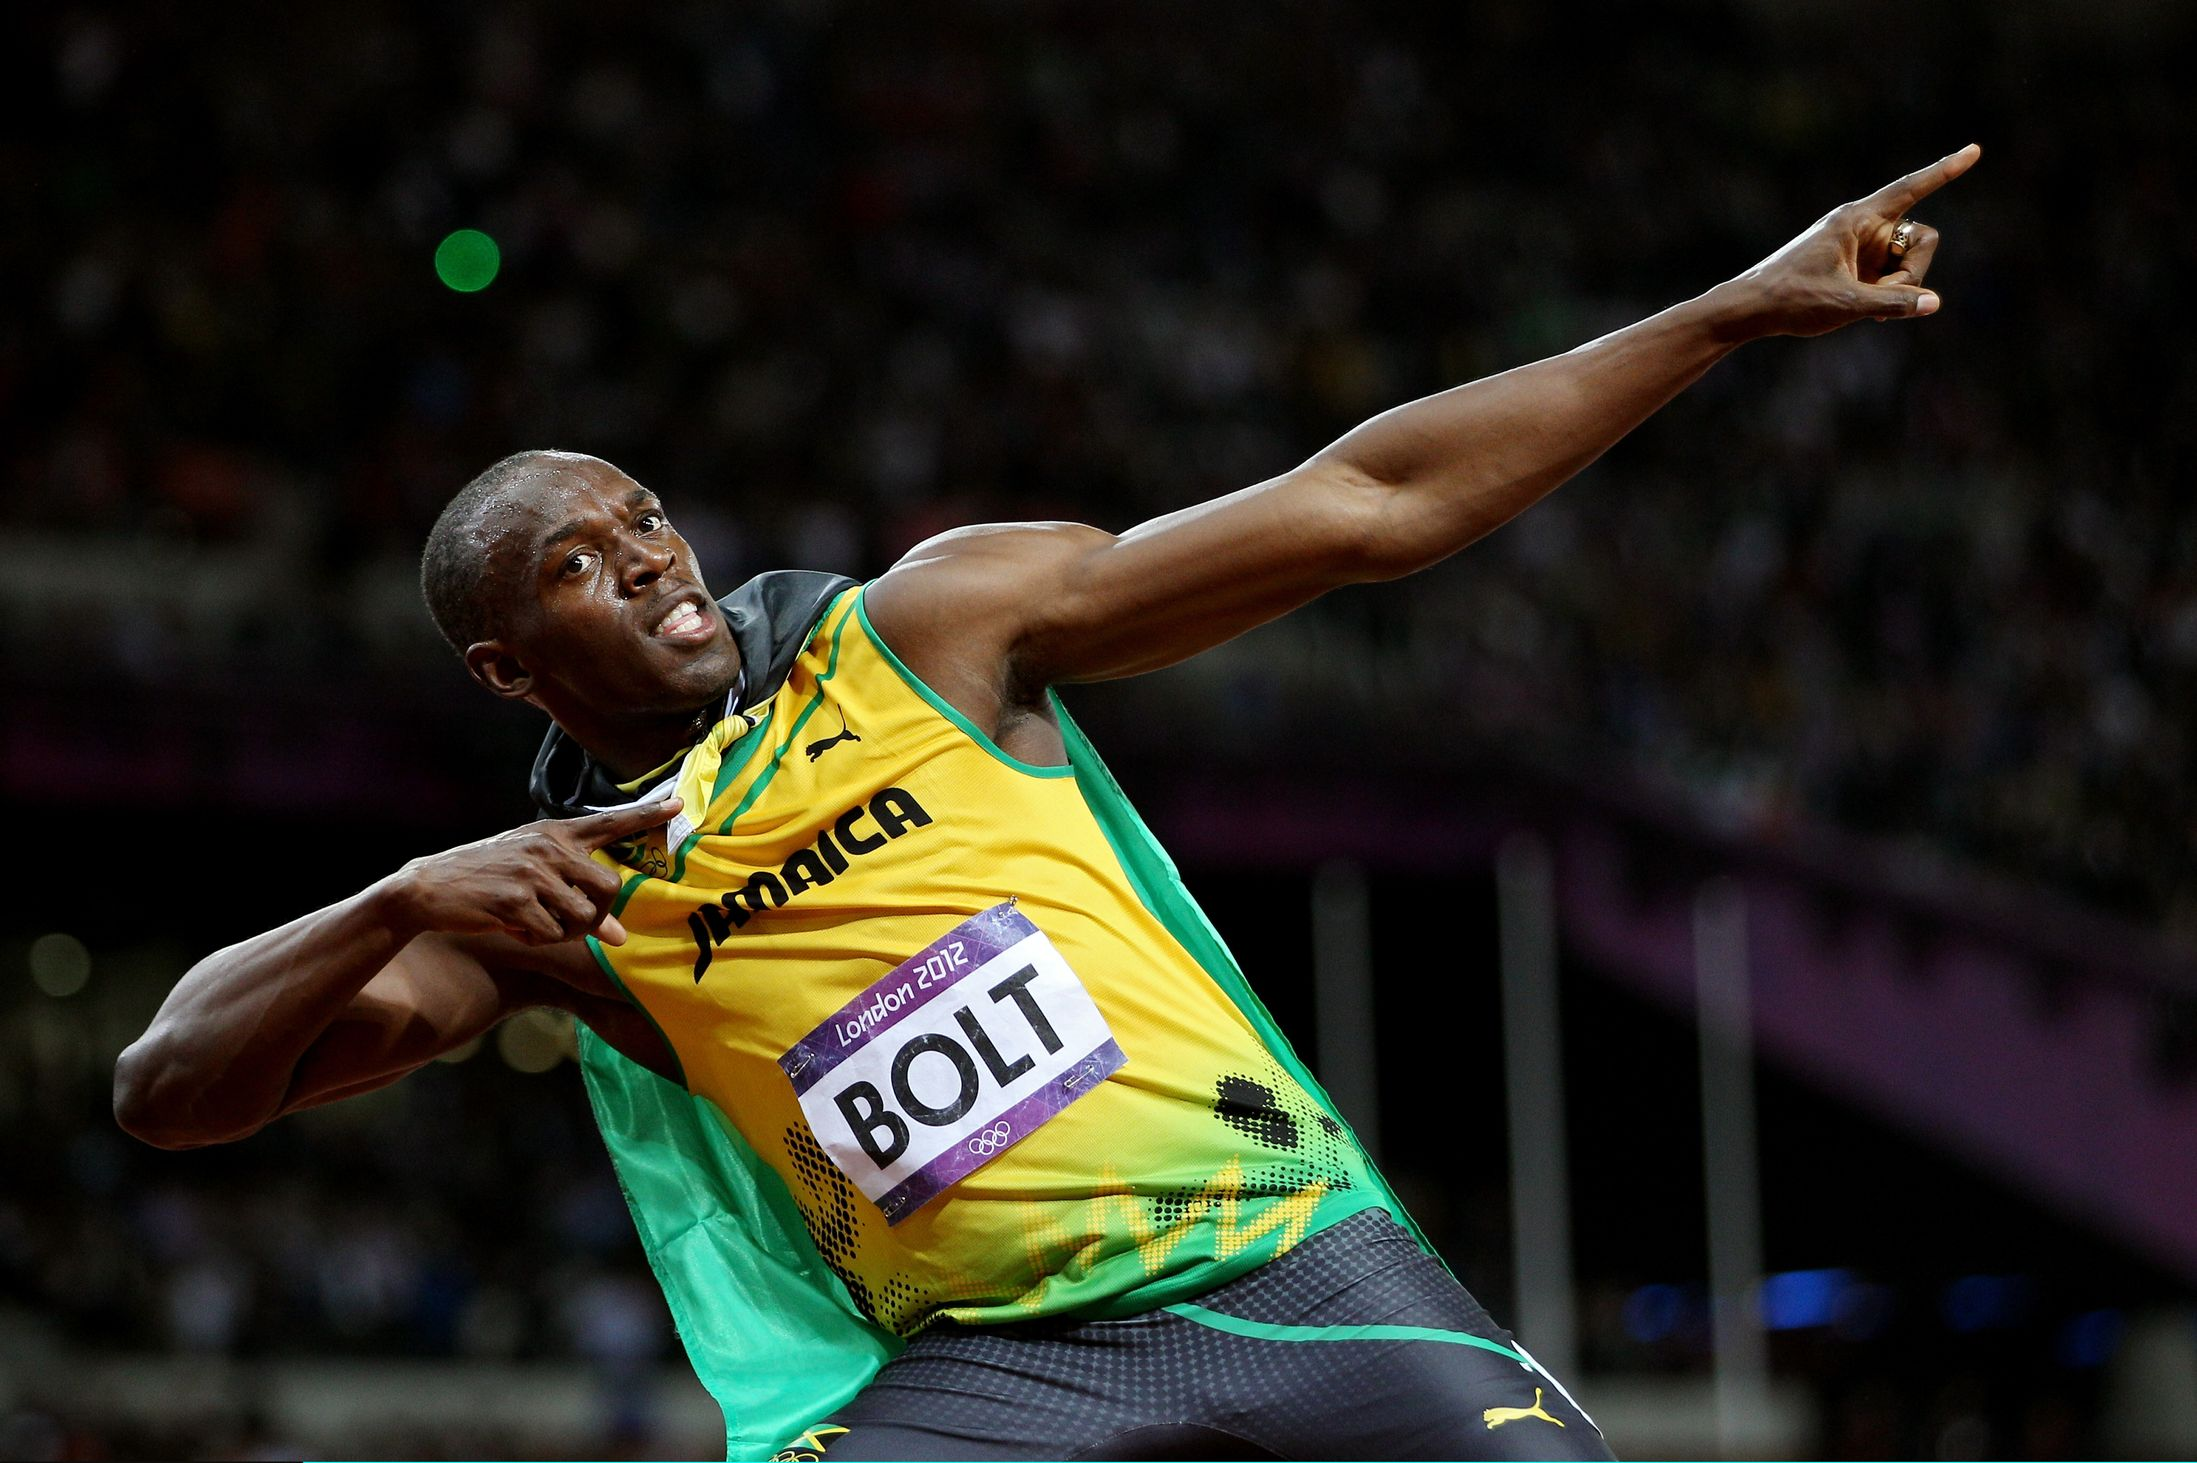 Usain Bolt on empty Tokyo Olympics stadium: 'I'm happy I don't have to do it', MORE ON USAIN, Usain Bolt: 'I would have run under 9.5 seconds with super spikes'